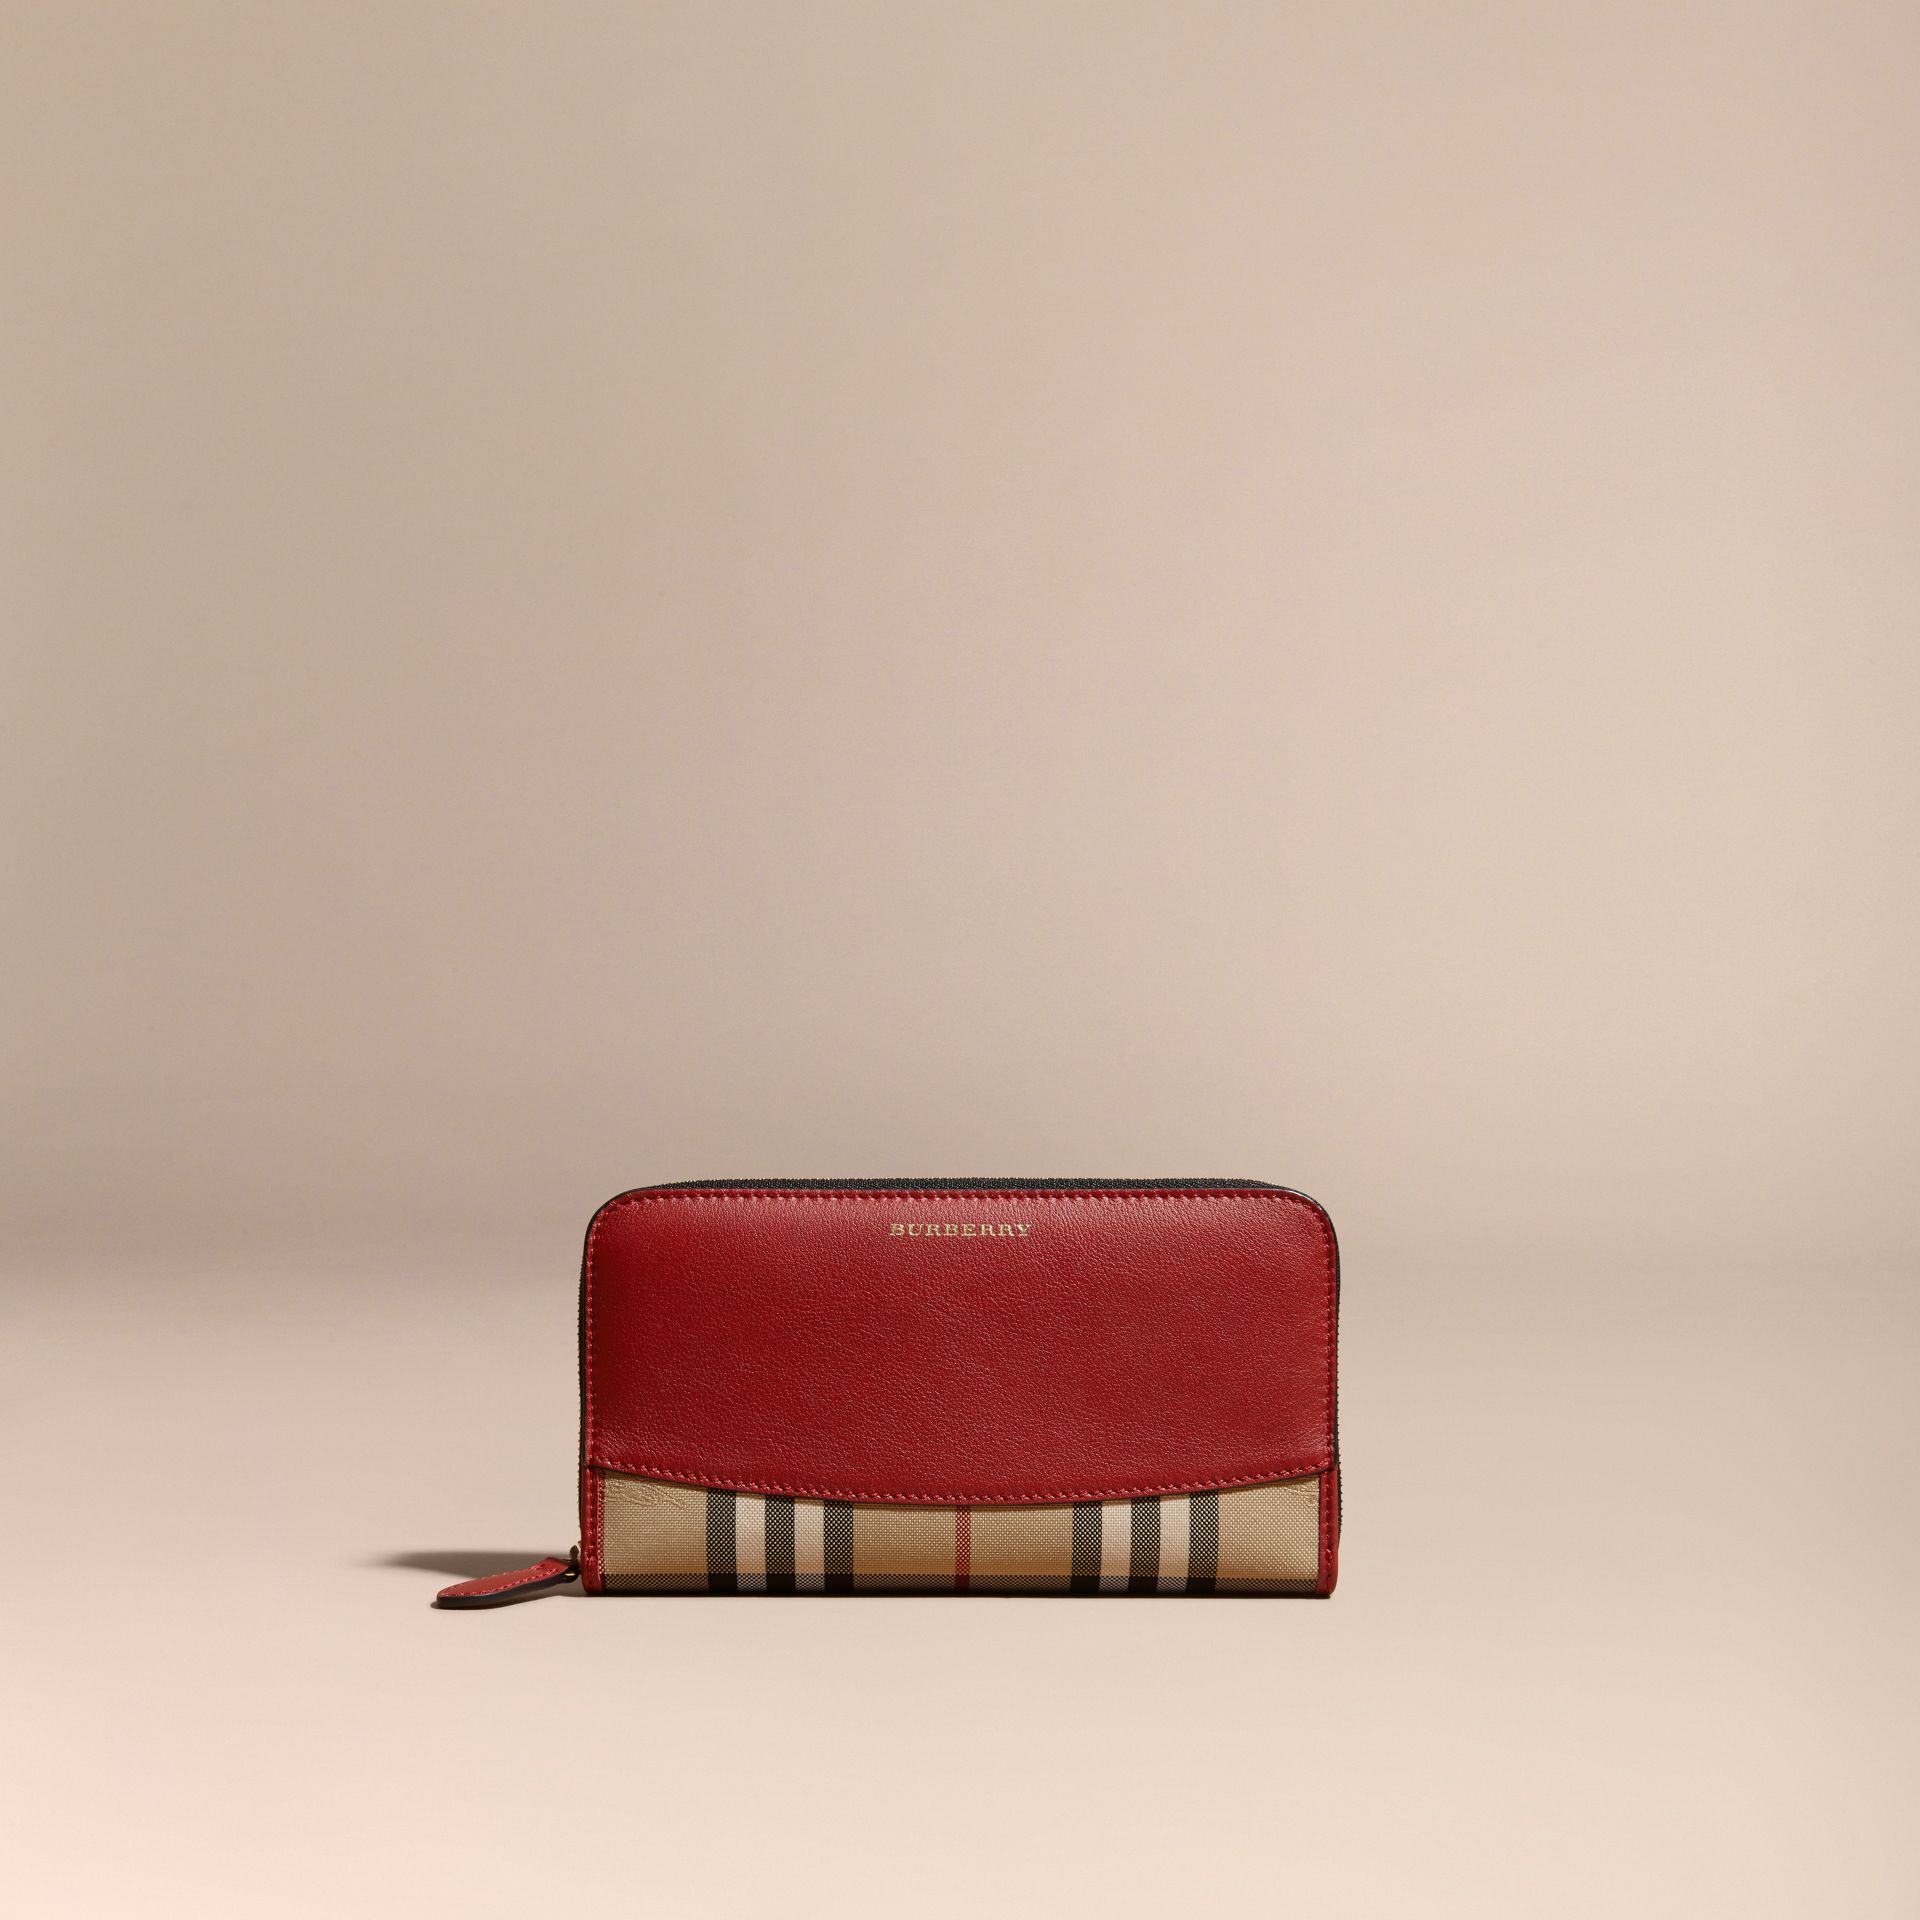 Horseferry Check and Leather Ziparound Wallet in Parade Red - Women | Burberry - gallery image 6